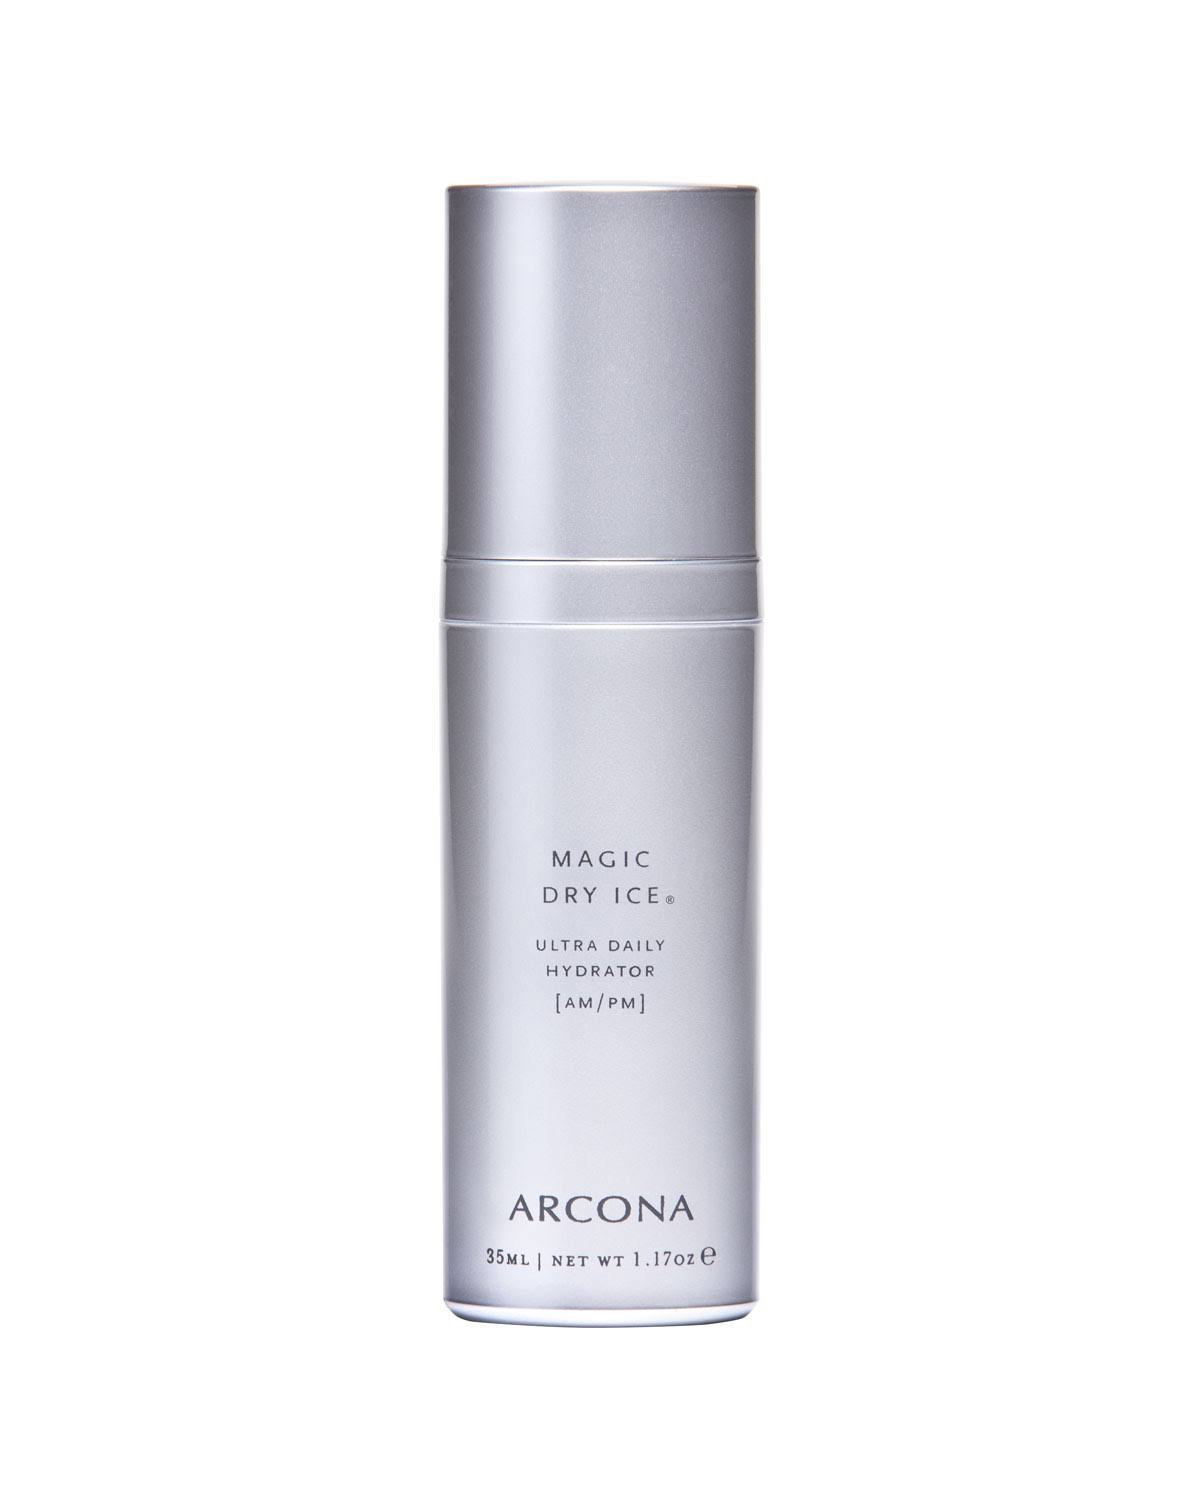 ARCONA Magic Dry Ice Ultra Daily Hydrator